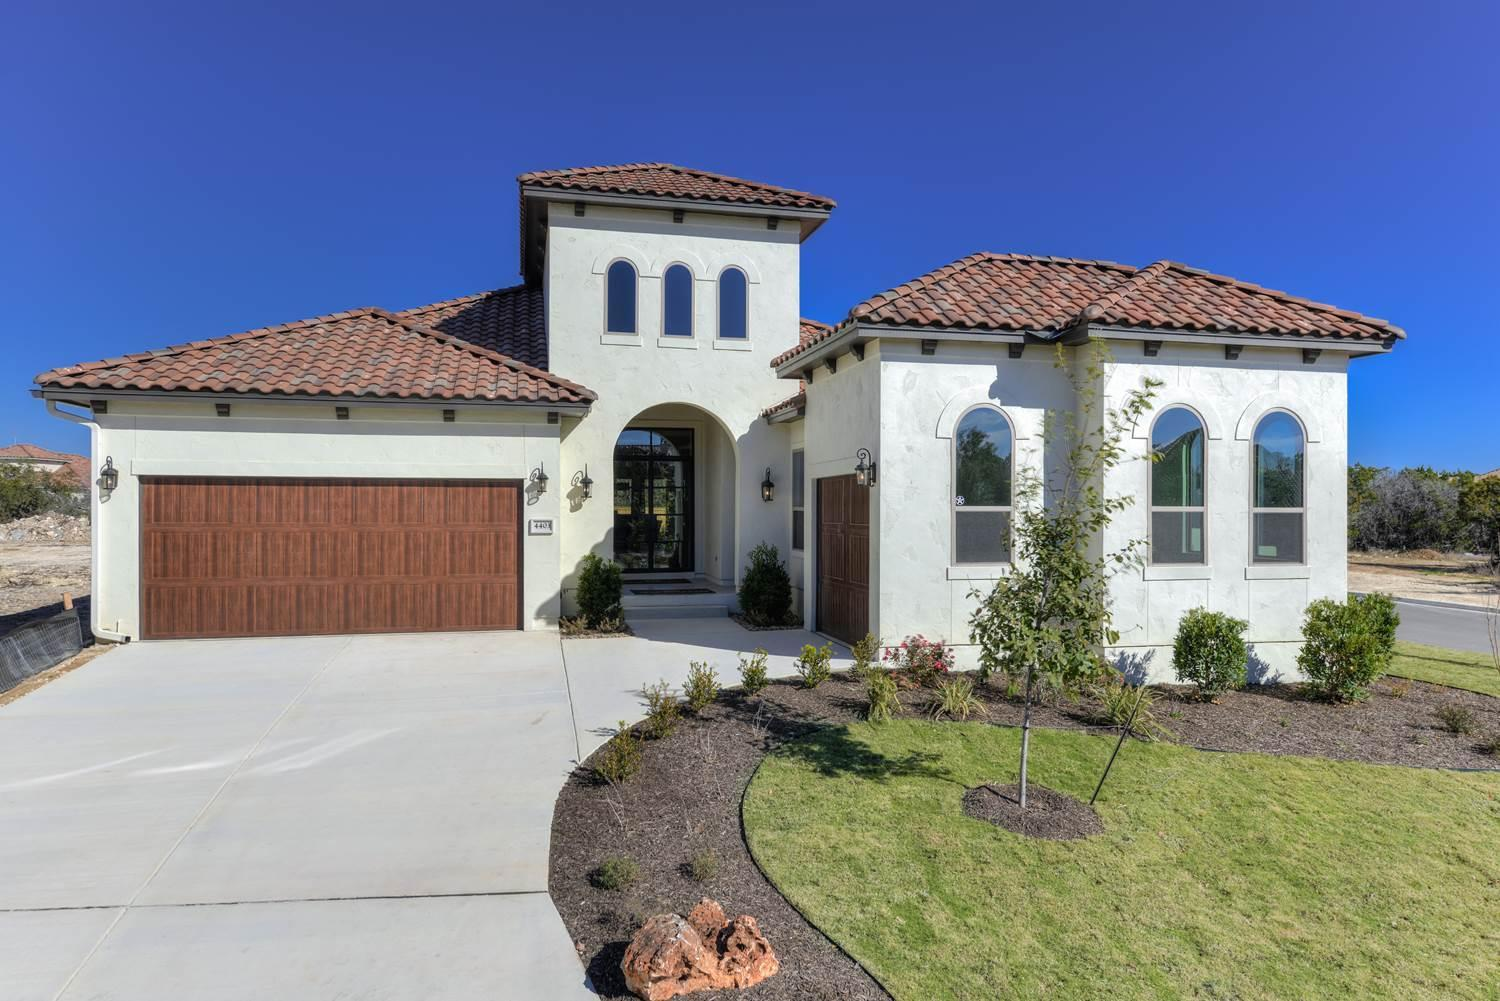 Garden Villas At Bentley Manor By Monticello Homes In San Antonio Texas